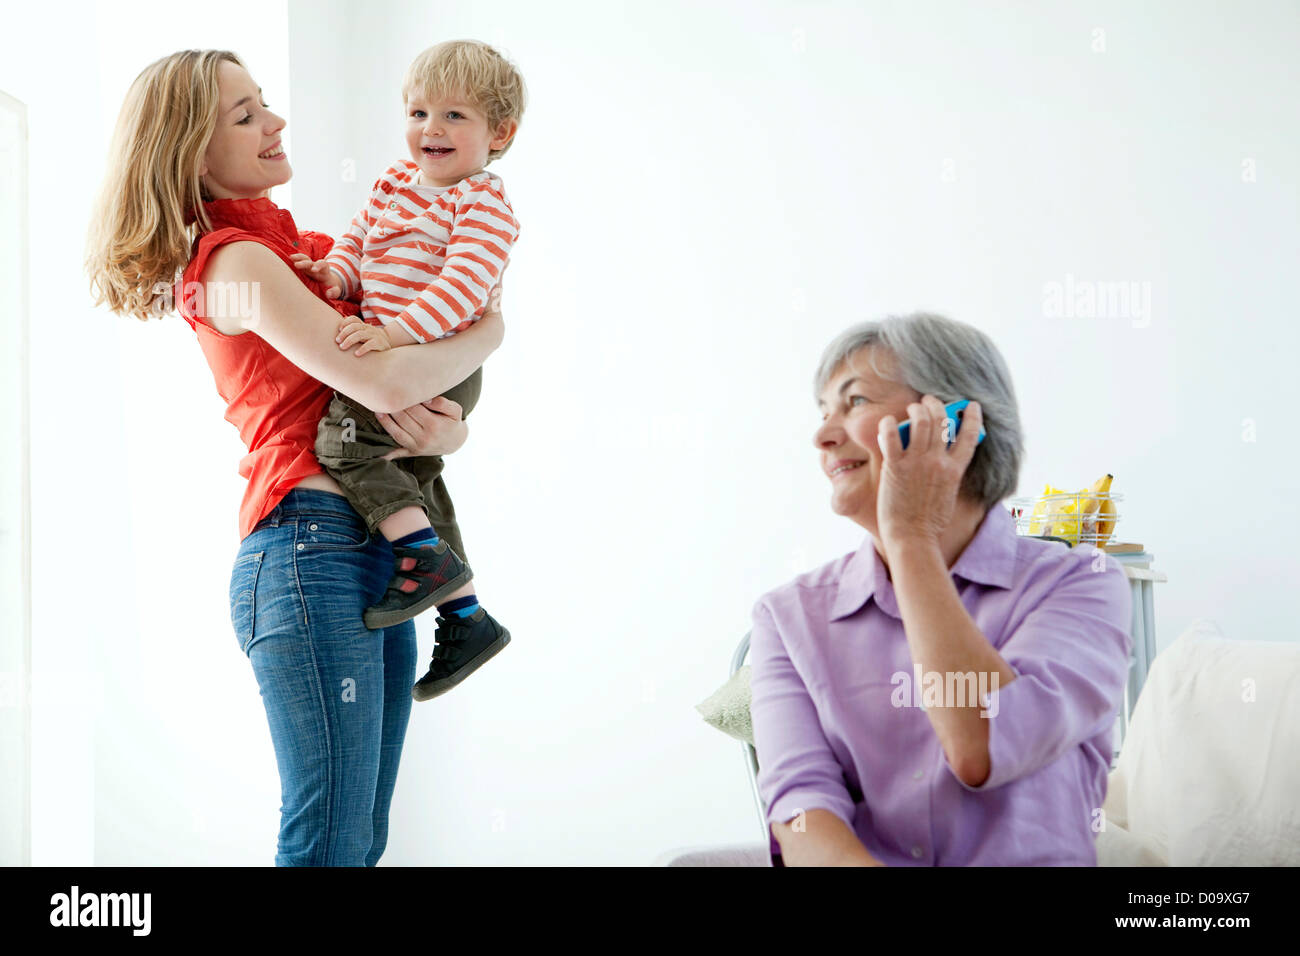 FAMILY INDOORS - Stock Image